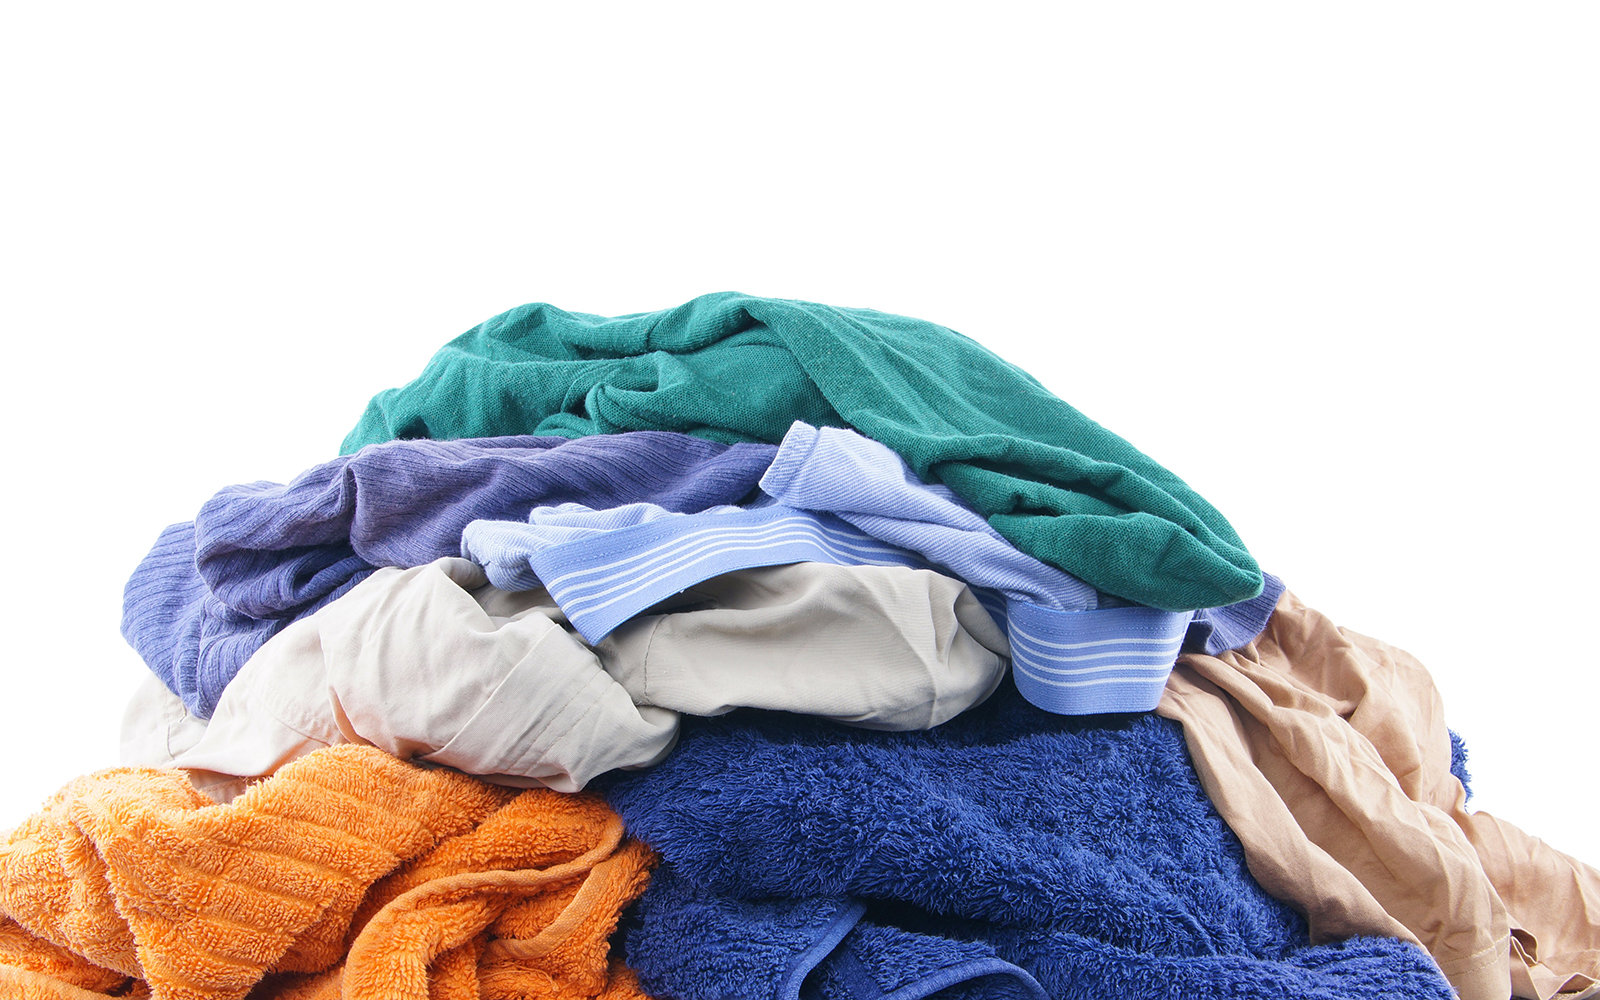 Dirty pile of laundry